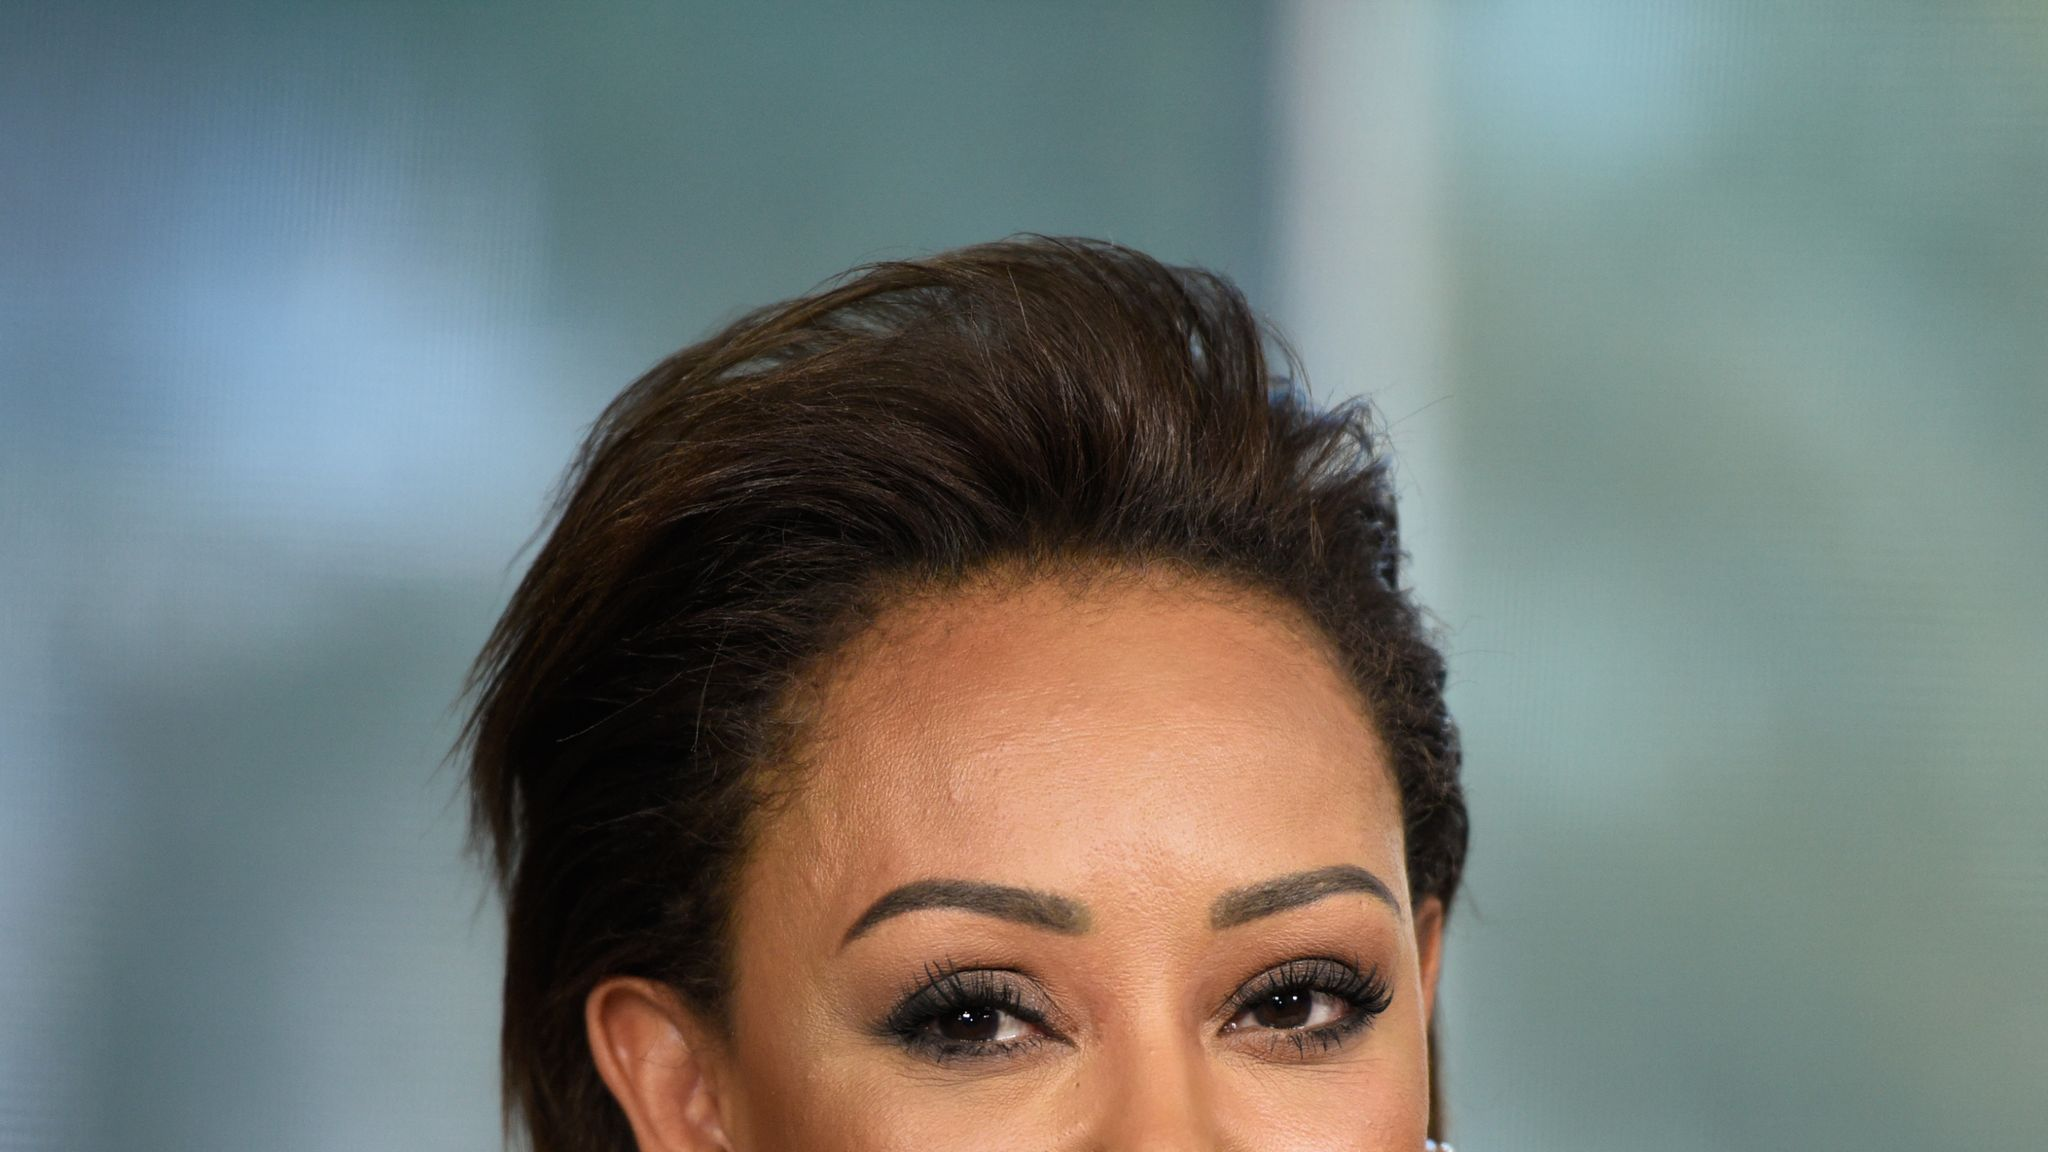 'Stop right now': Tesco pulls Mel B advert after Spice Girl complains